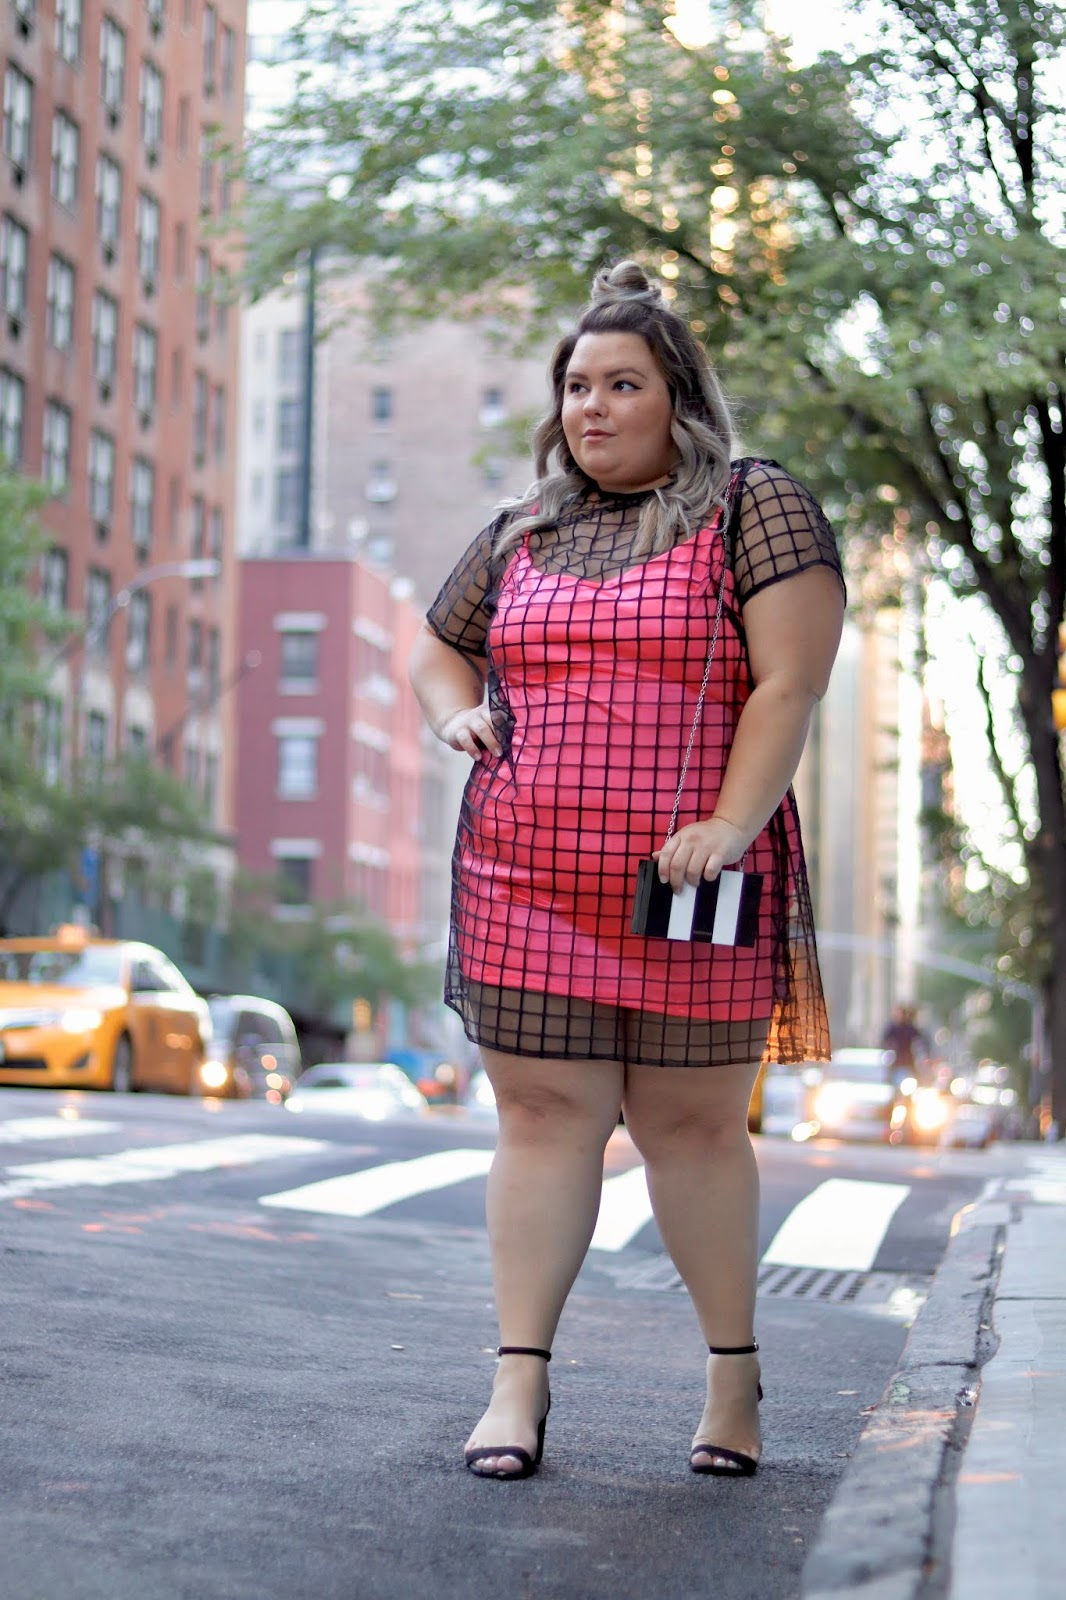 Chicago Plus Size Petite Fashion Blogger, influencer, YouTuber, and model Natalie Craig, of Natalie in the City, shared what she wore to New York Fashion Week (NYFW) and theCURVYcon 2019. fat fashion week full figured ASOS Curve fashion nova curve Ashley Nell Tipton